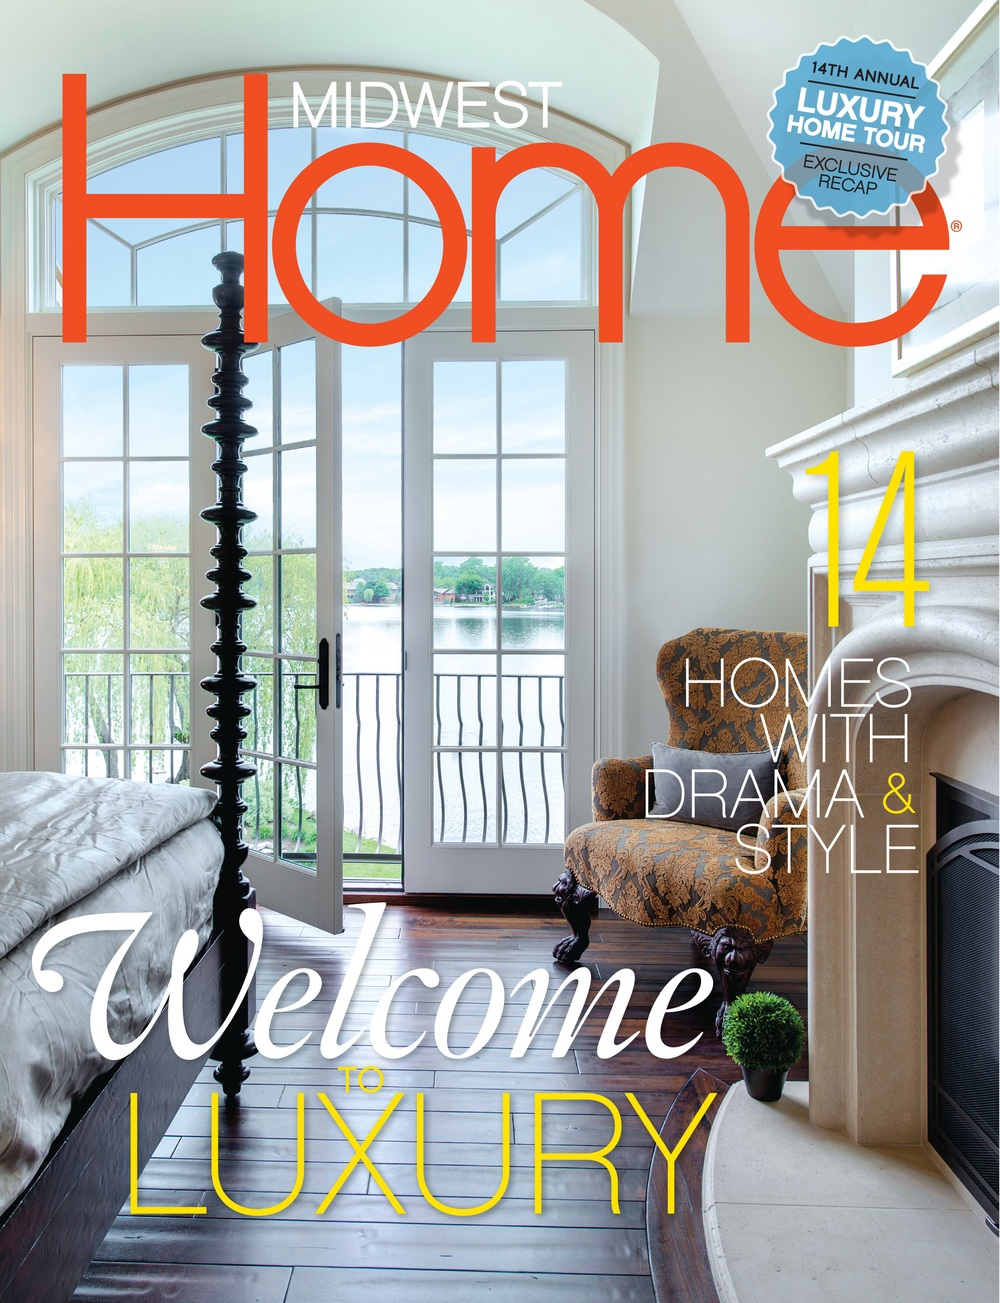 Nor-Son Featured in Midwest Home Magazine's August 2014 Issue